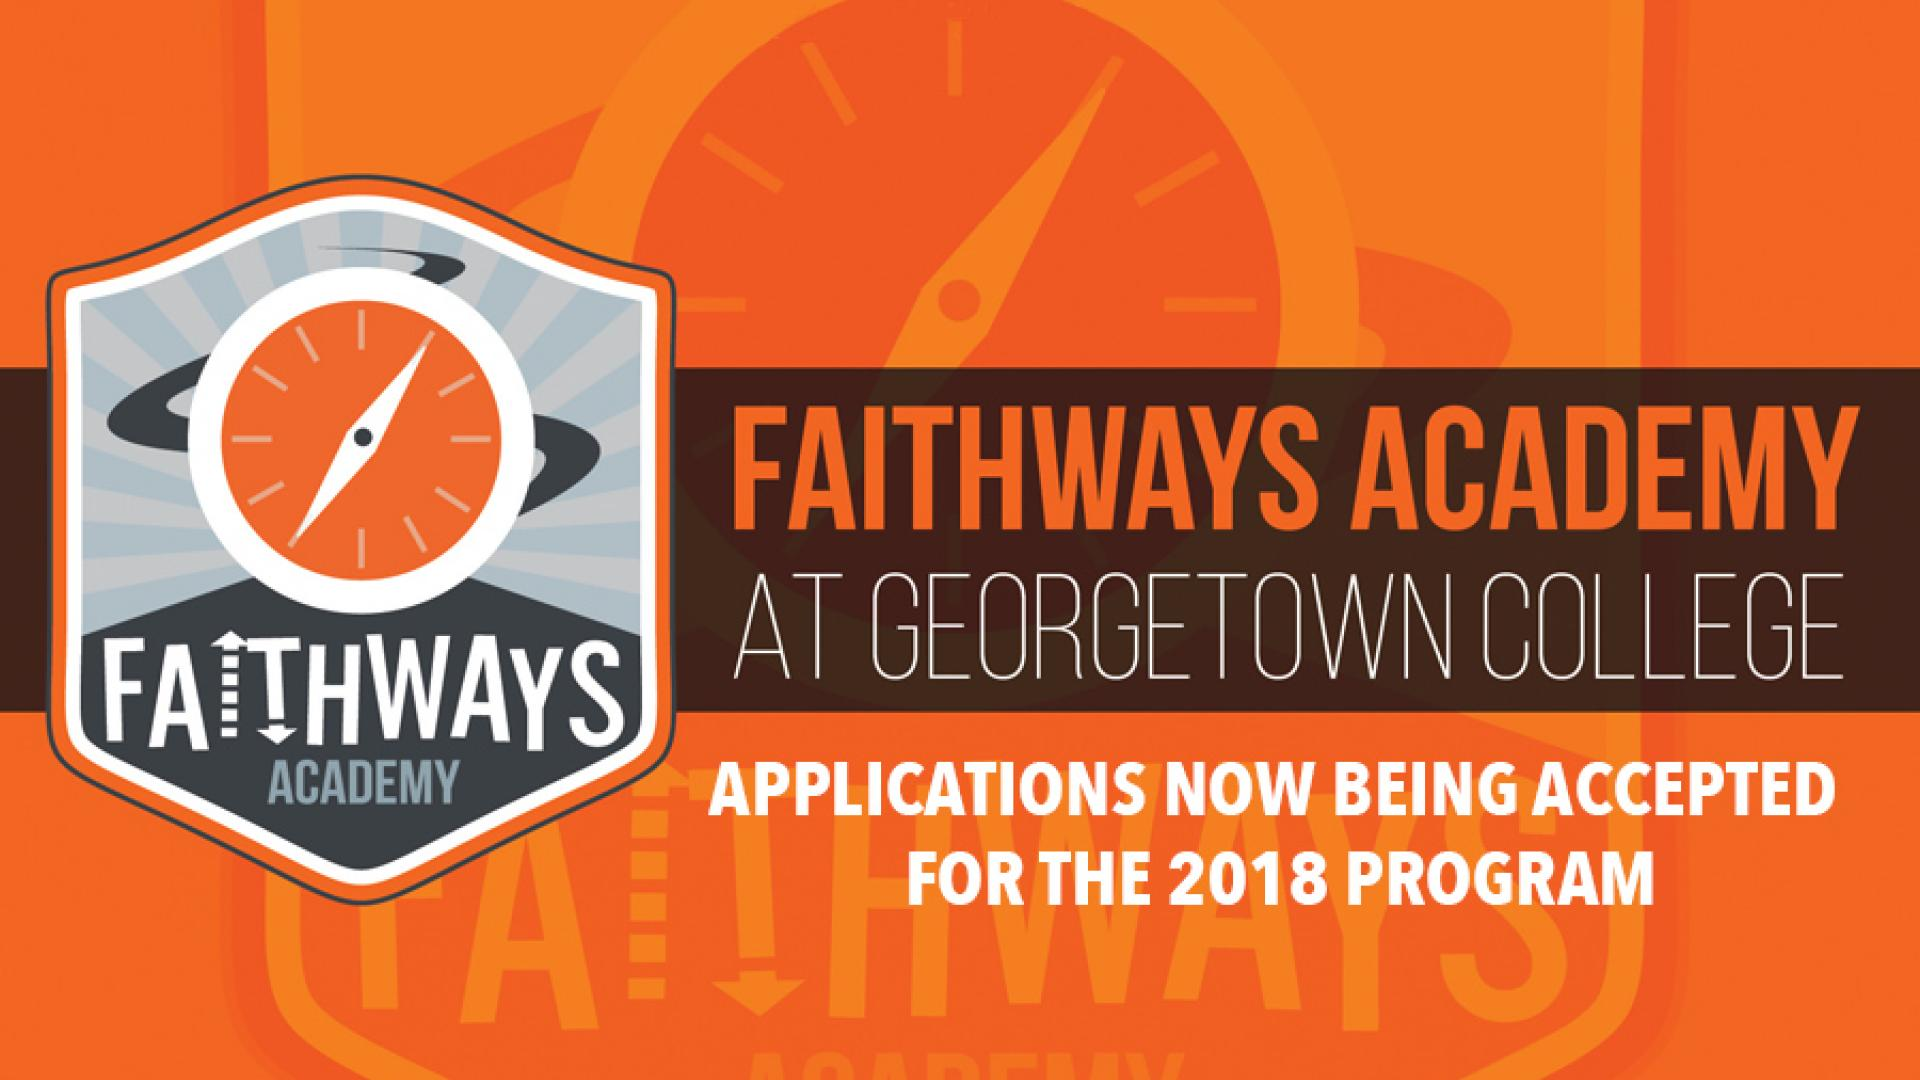 Alumni, Friends encouraged to refer applicants for Faithways Academy